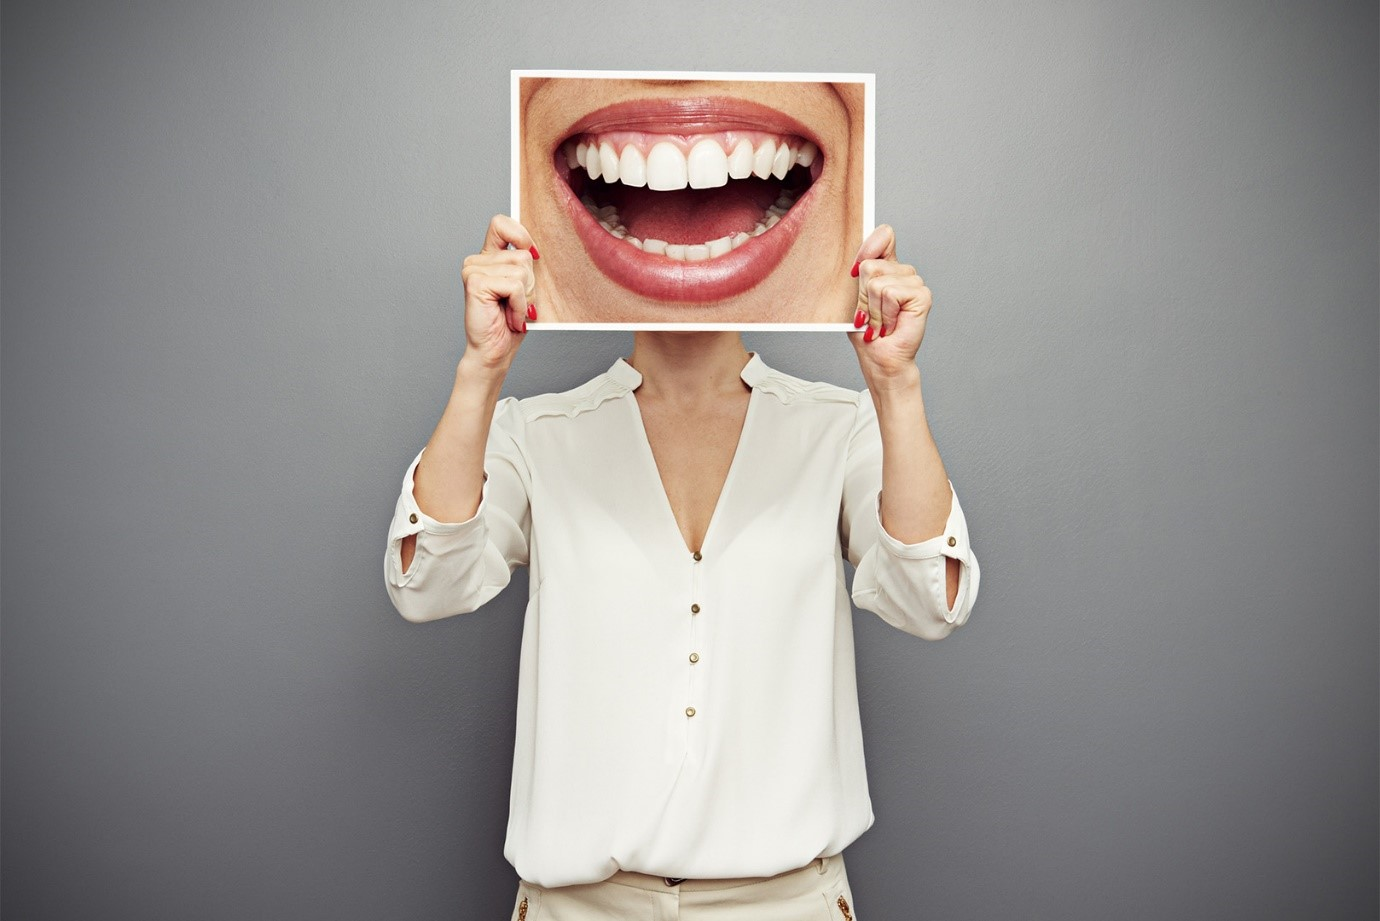 Have You Considered Joining A Corporate Dental Practice?